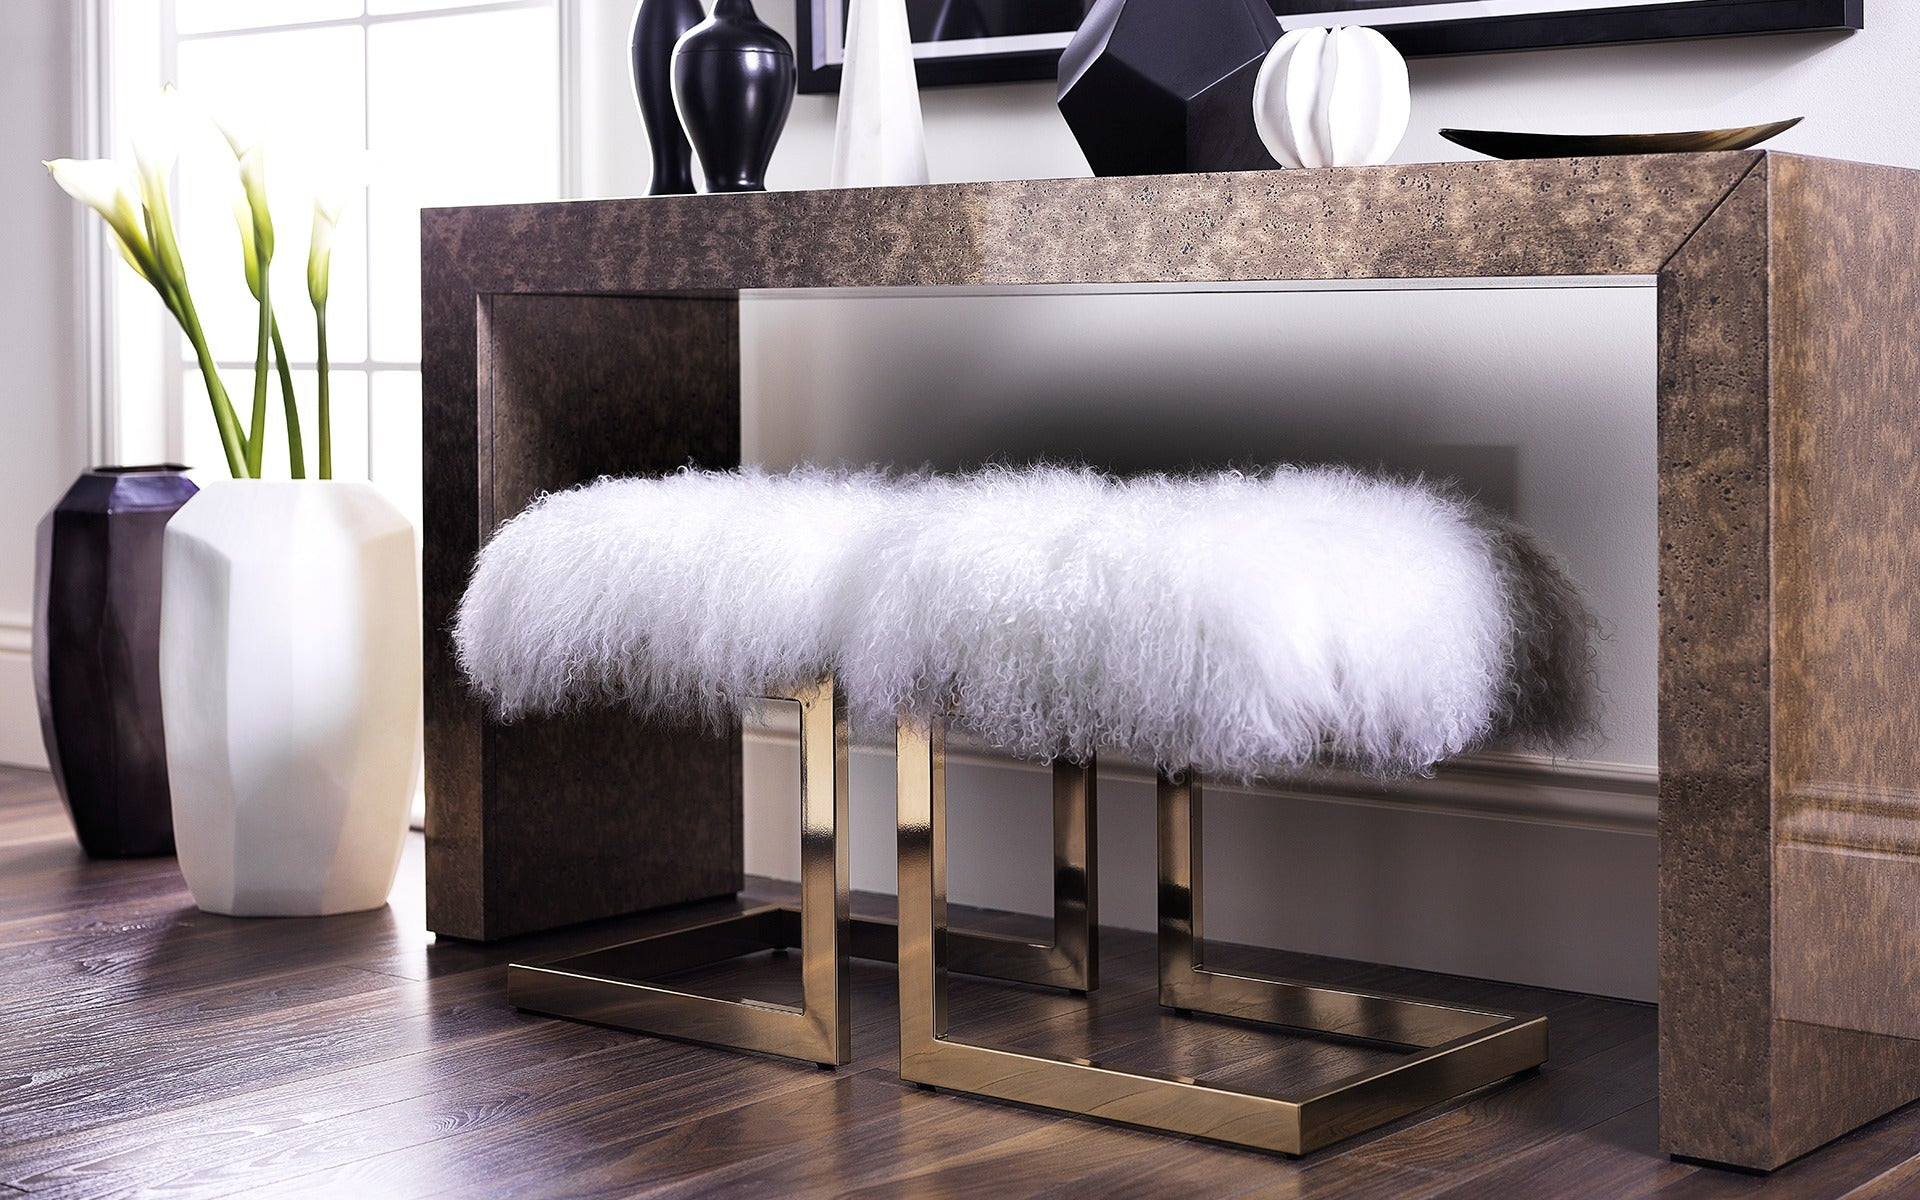 How To Use Texture In Interior Design - Add Textured Furniture - LuxDeco.com Style Guide